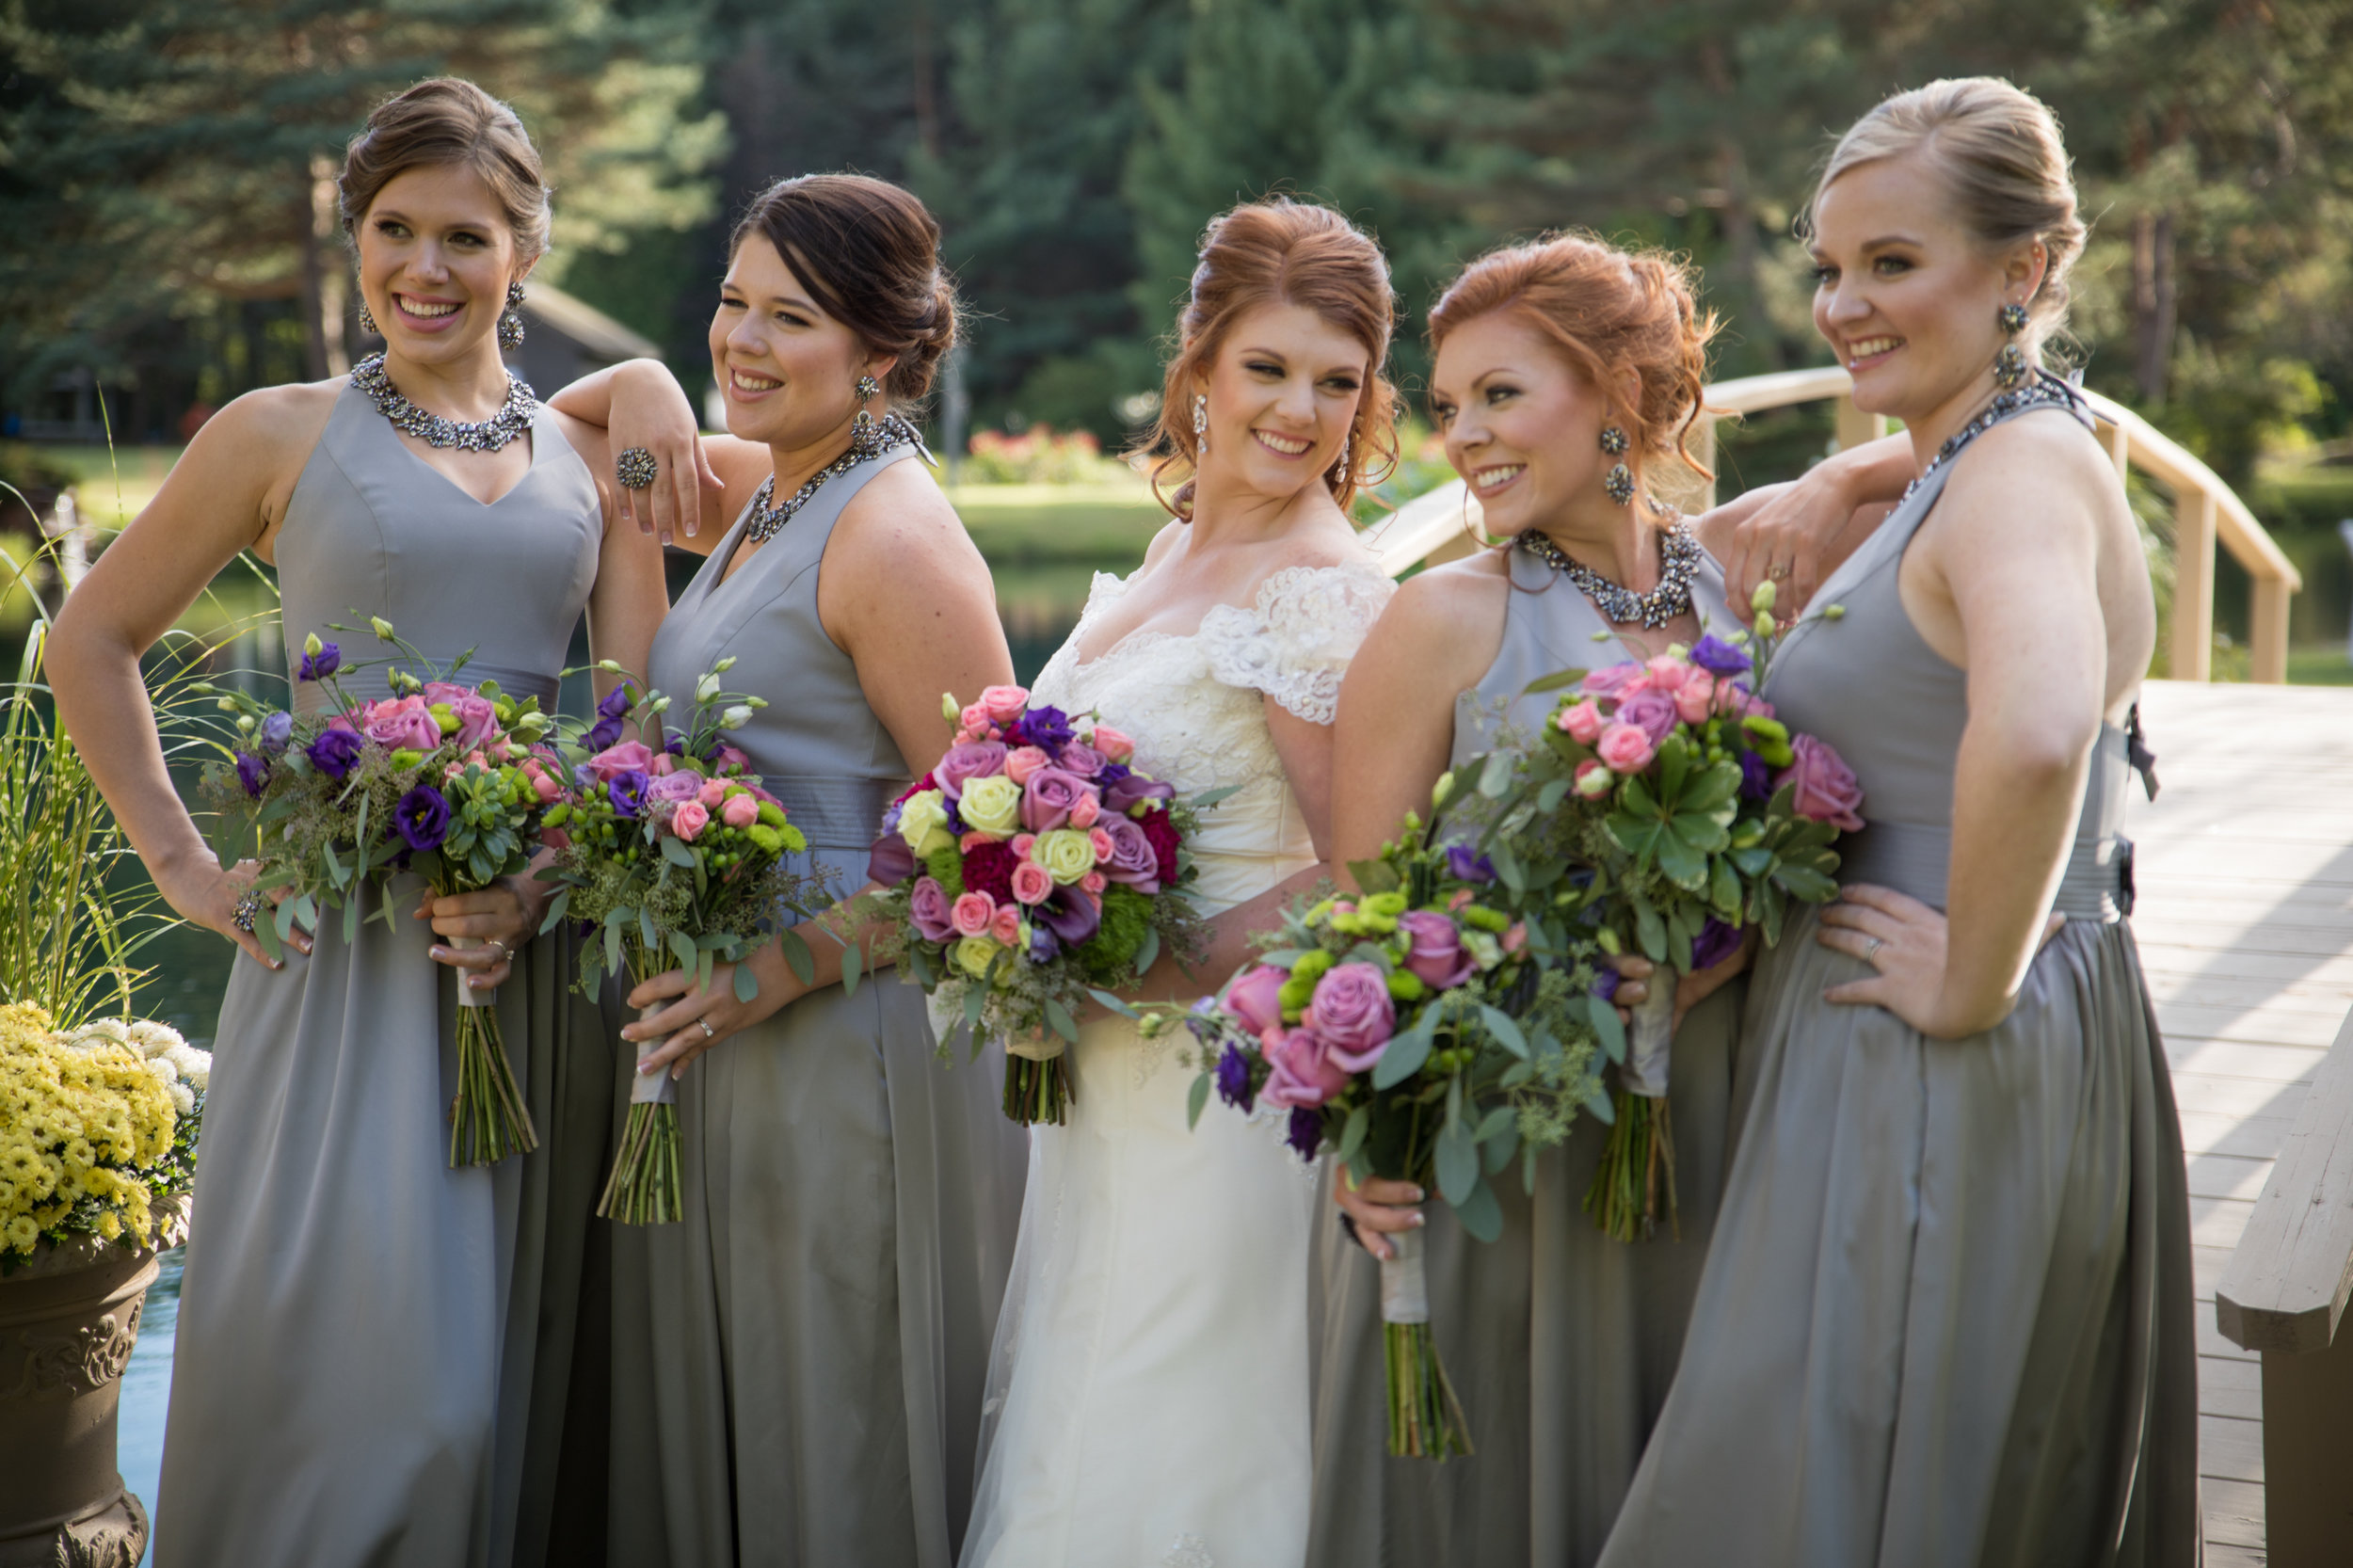 Bride posing with bridesmaids for professional wedding photographer